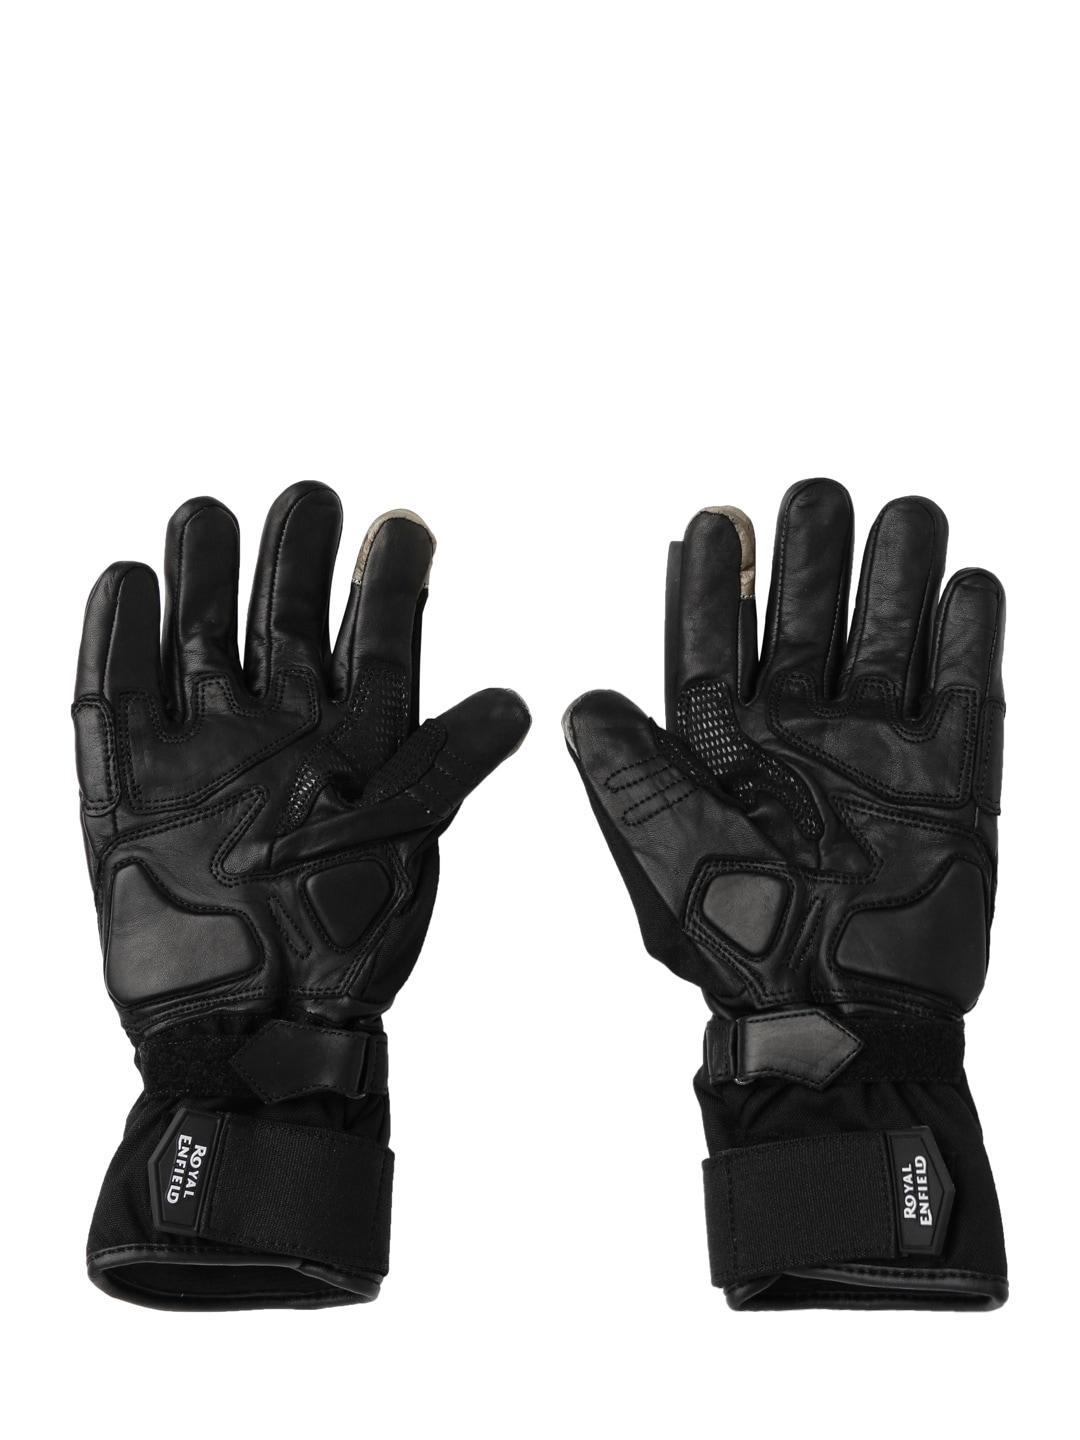 Buy leather hand gloves online india - Buy Leather Hand Gloves Online India